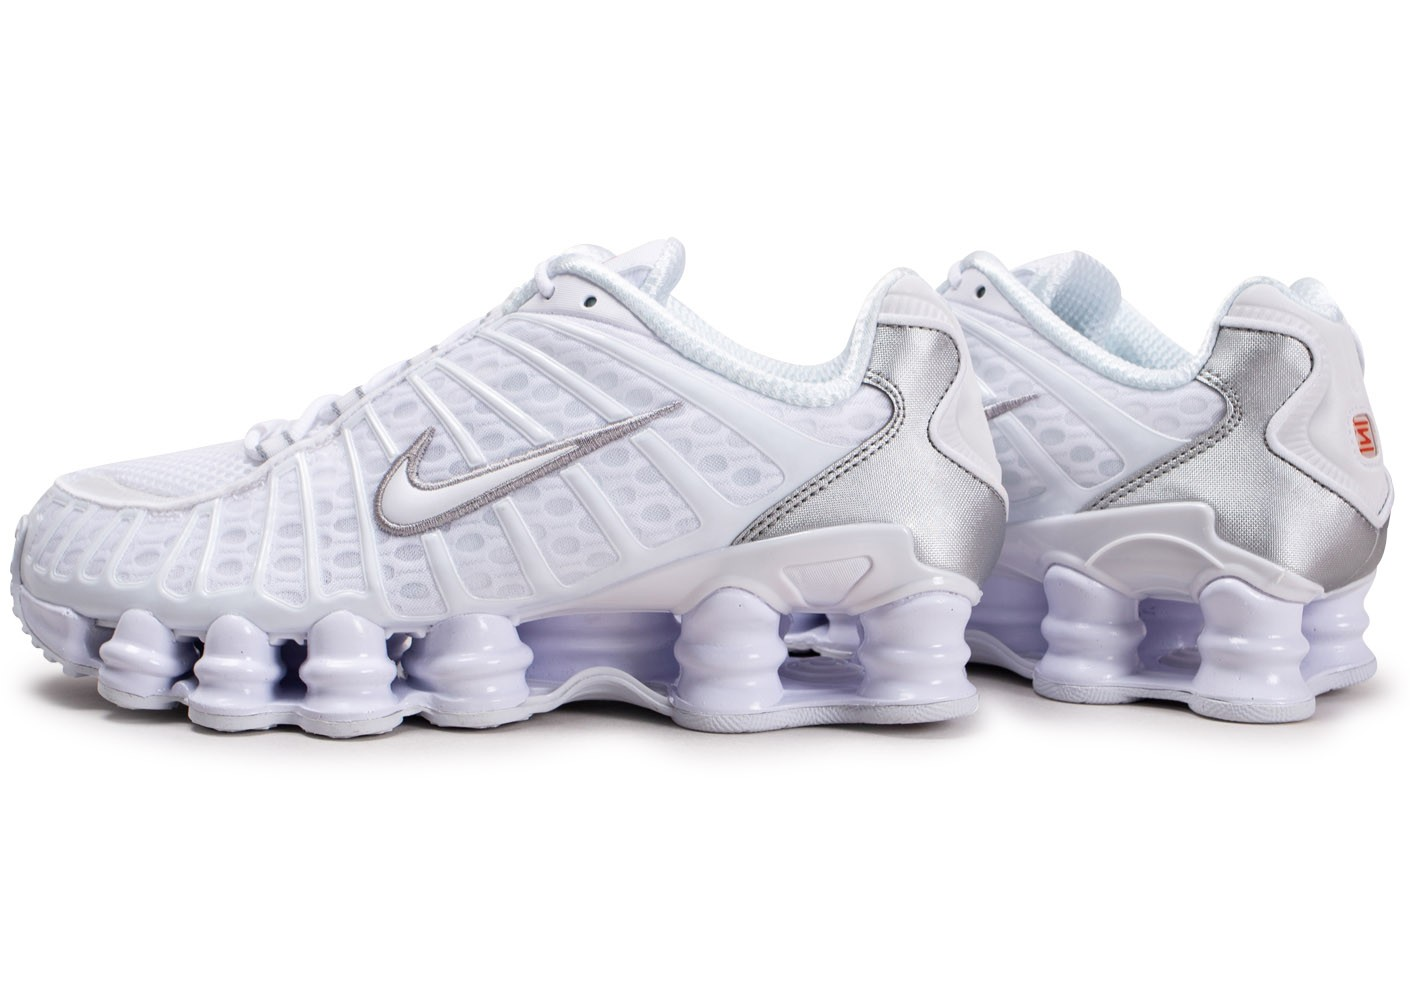 Nike Shox TL blanc argent Chaussures Baskets homme Chausport